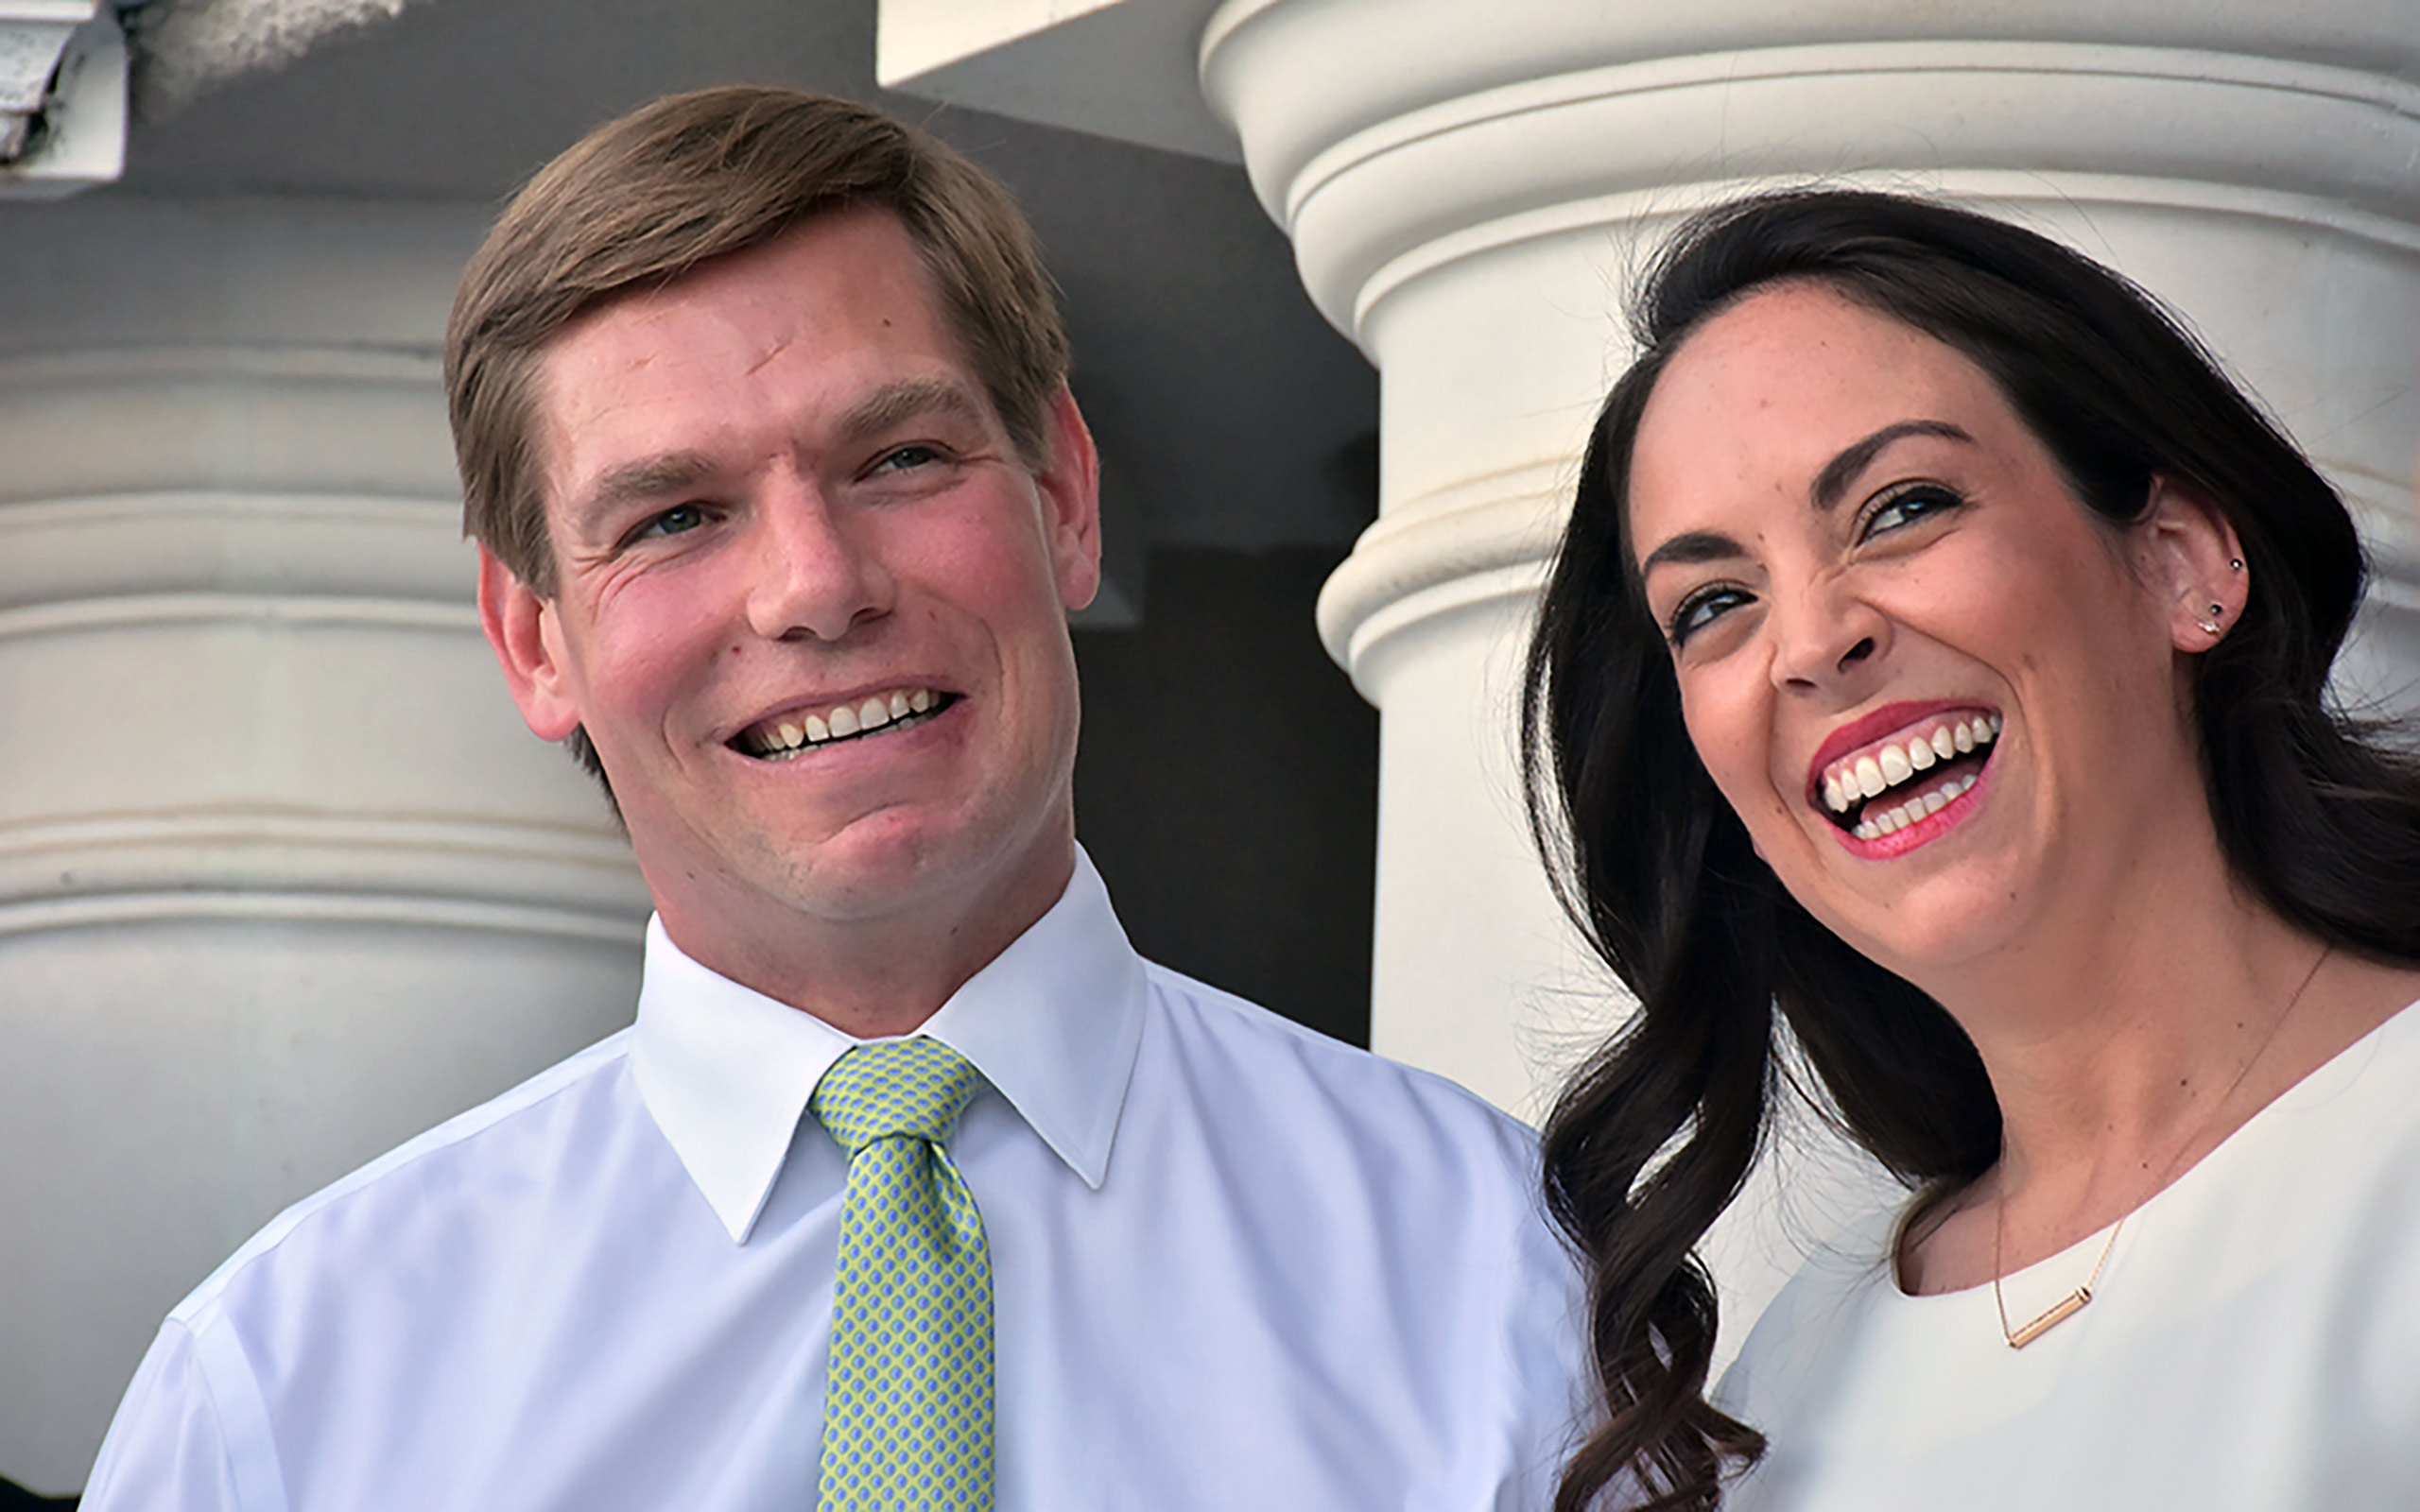 swalwell-about.jpg